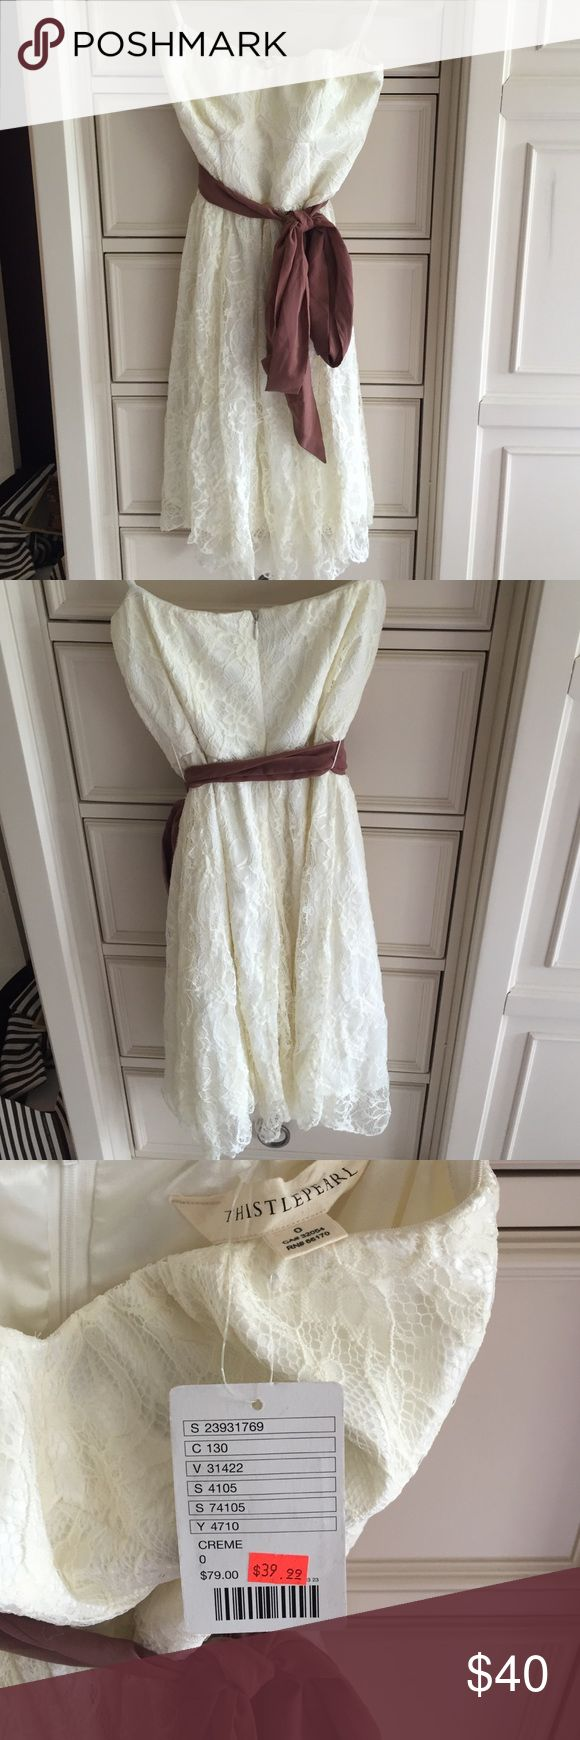 White lace strapless dress with brown ribbon belt White lace strapless dress with a brown ribbon belt perfect for summer BBQs. Urban Outfitters Dresses Strapless